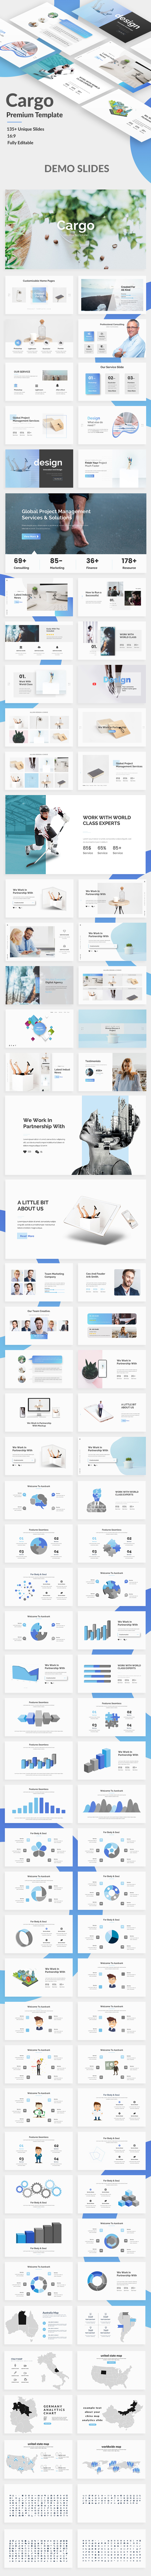 Cargo Creative Keynote Template - Creative Keynote Templates